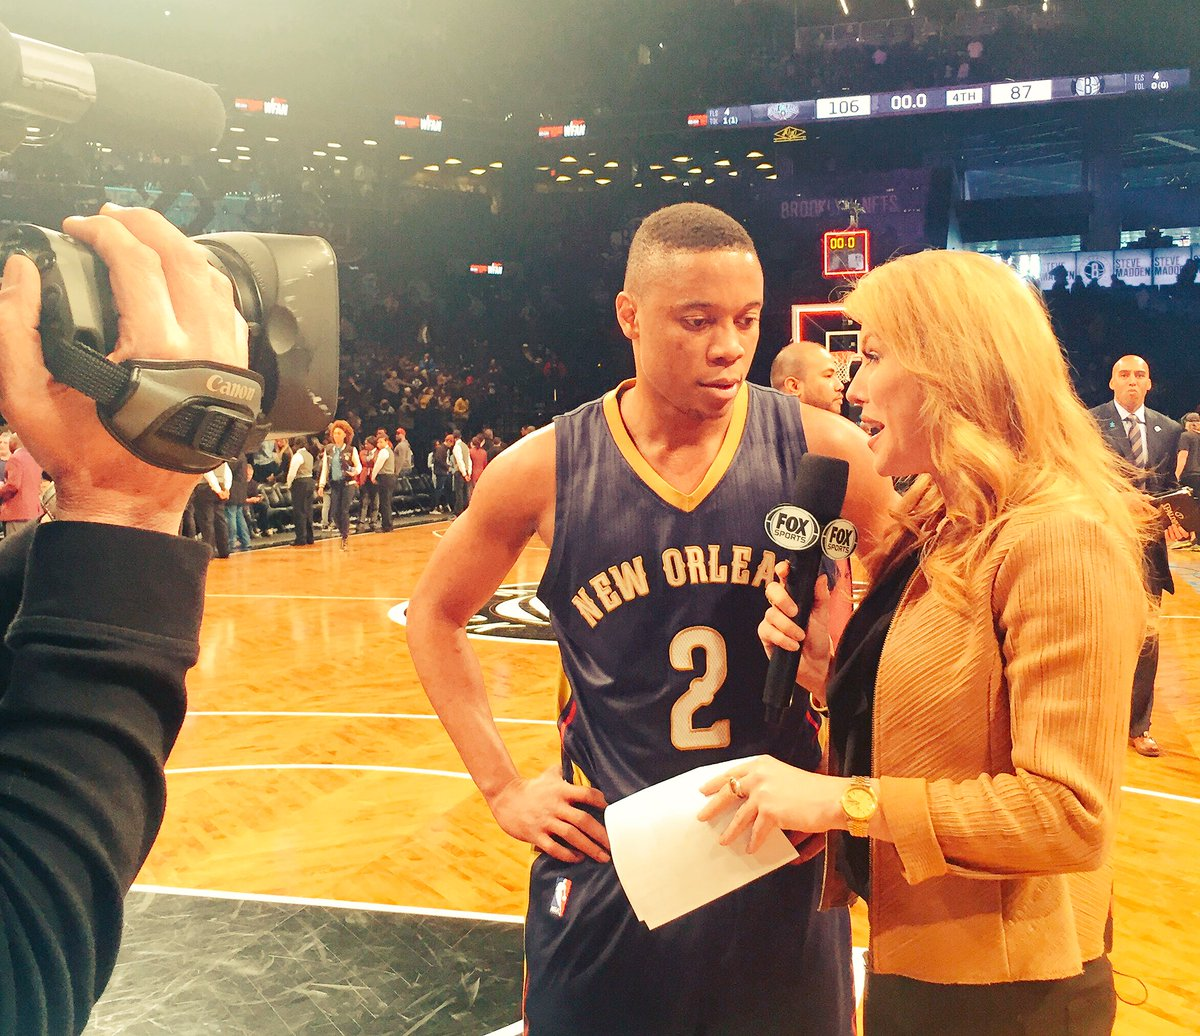 The @PelicansNBA win as Tim Frazier sets new career highs in scoring & assists, as well as 1st career double double! https://t.co/tjkq8SYCvR